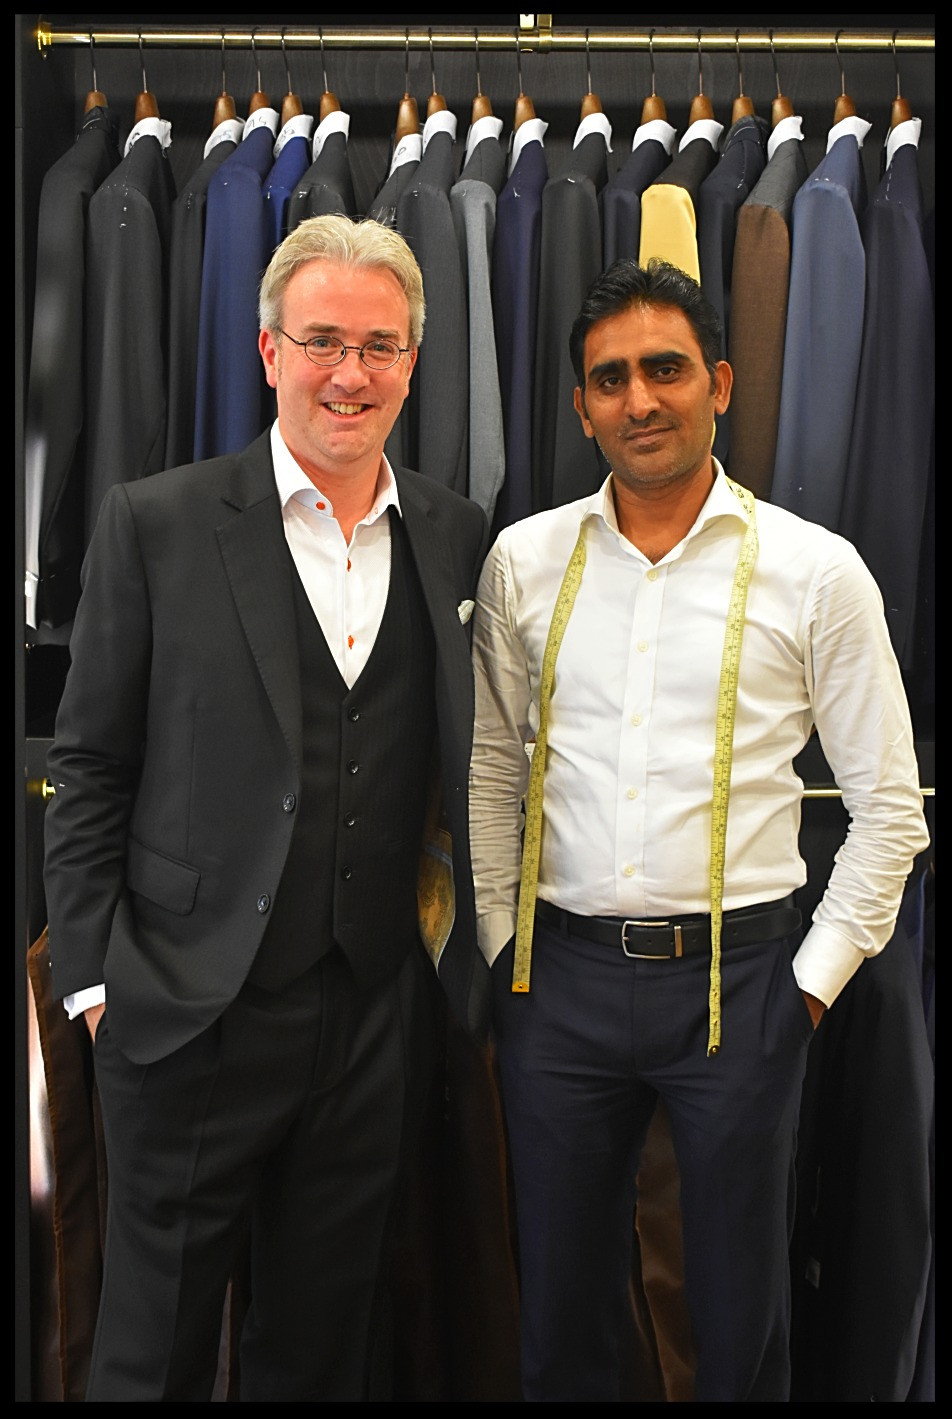 The Final Product with Master Tailor, Naim Ahmed - Allure Fine Tailoring, Abu Dhabi